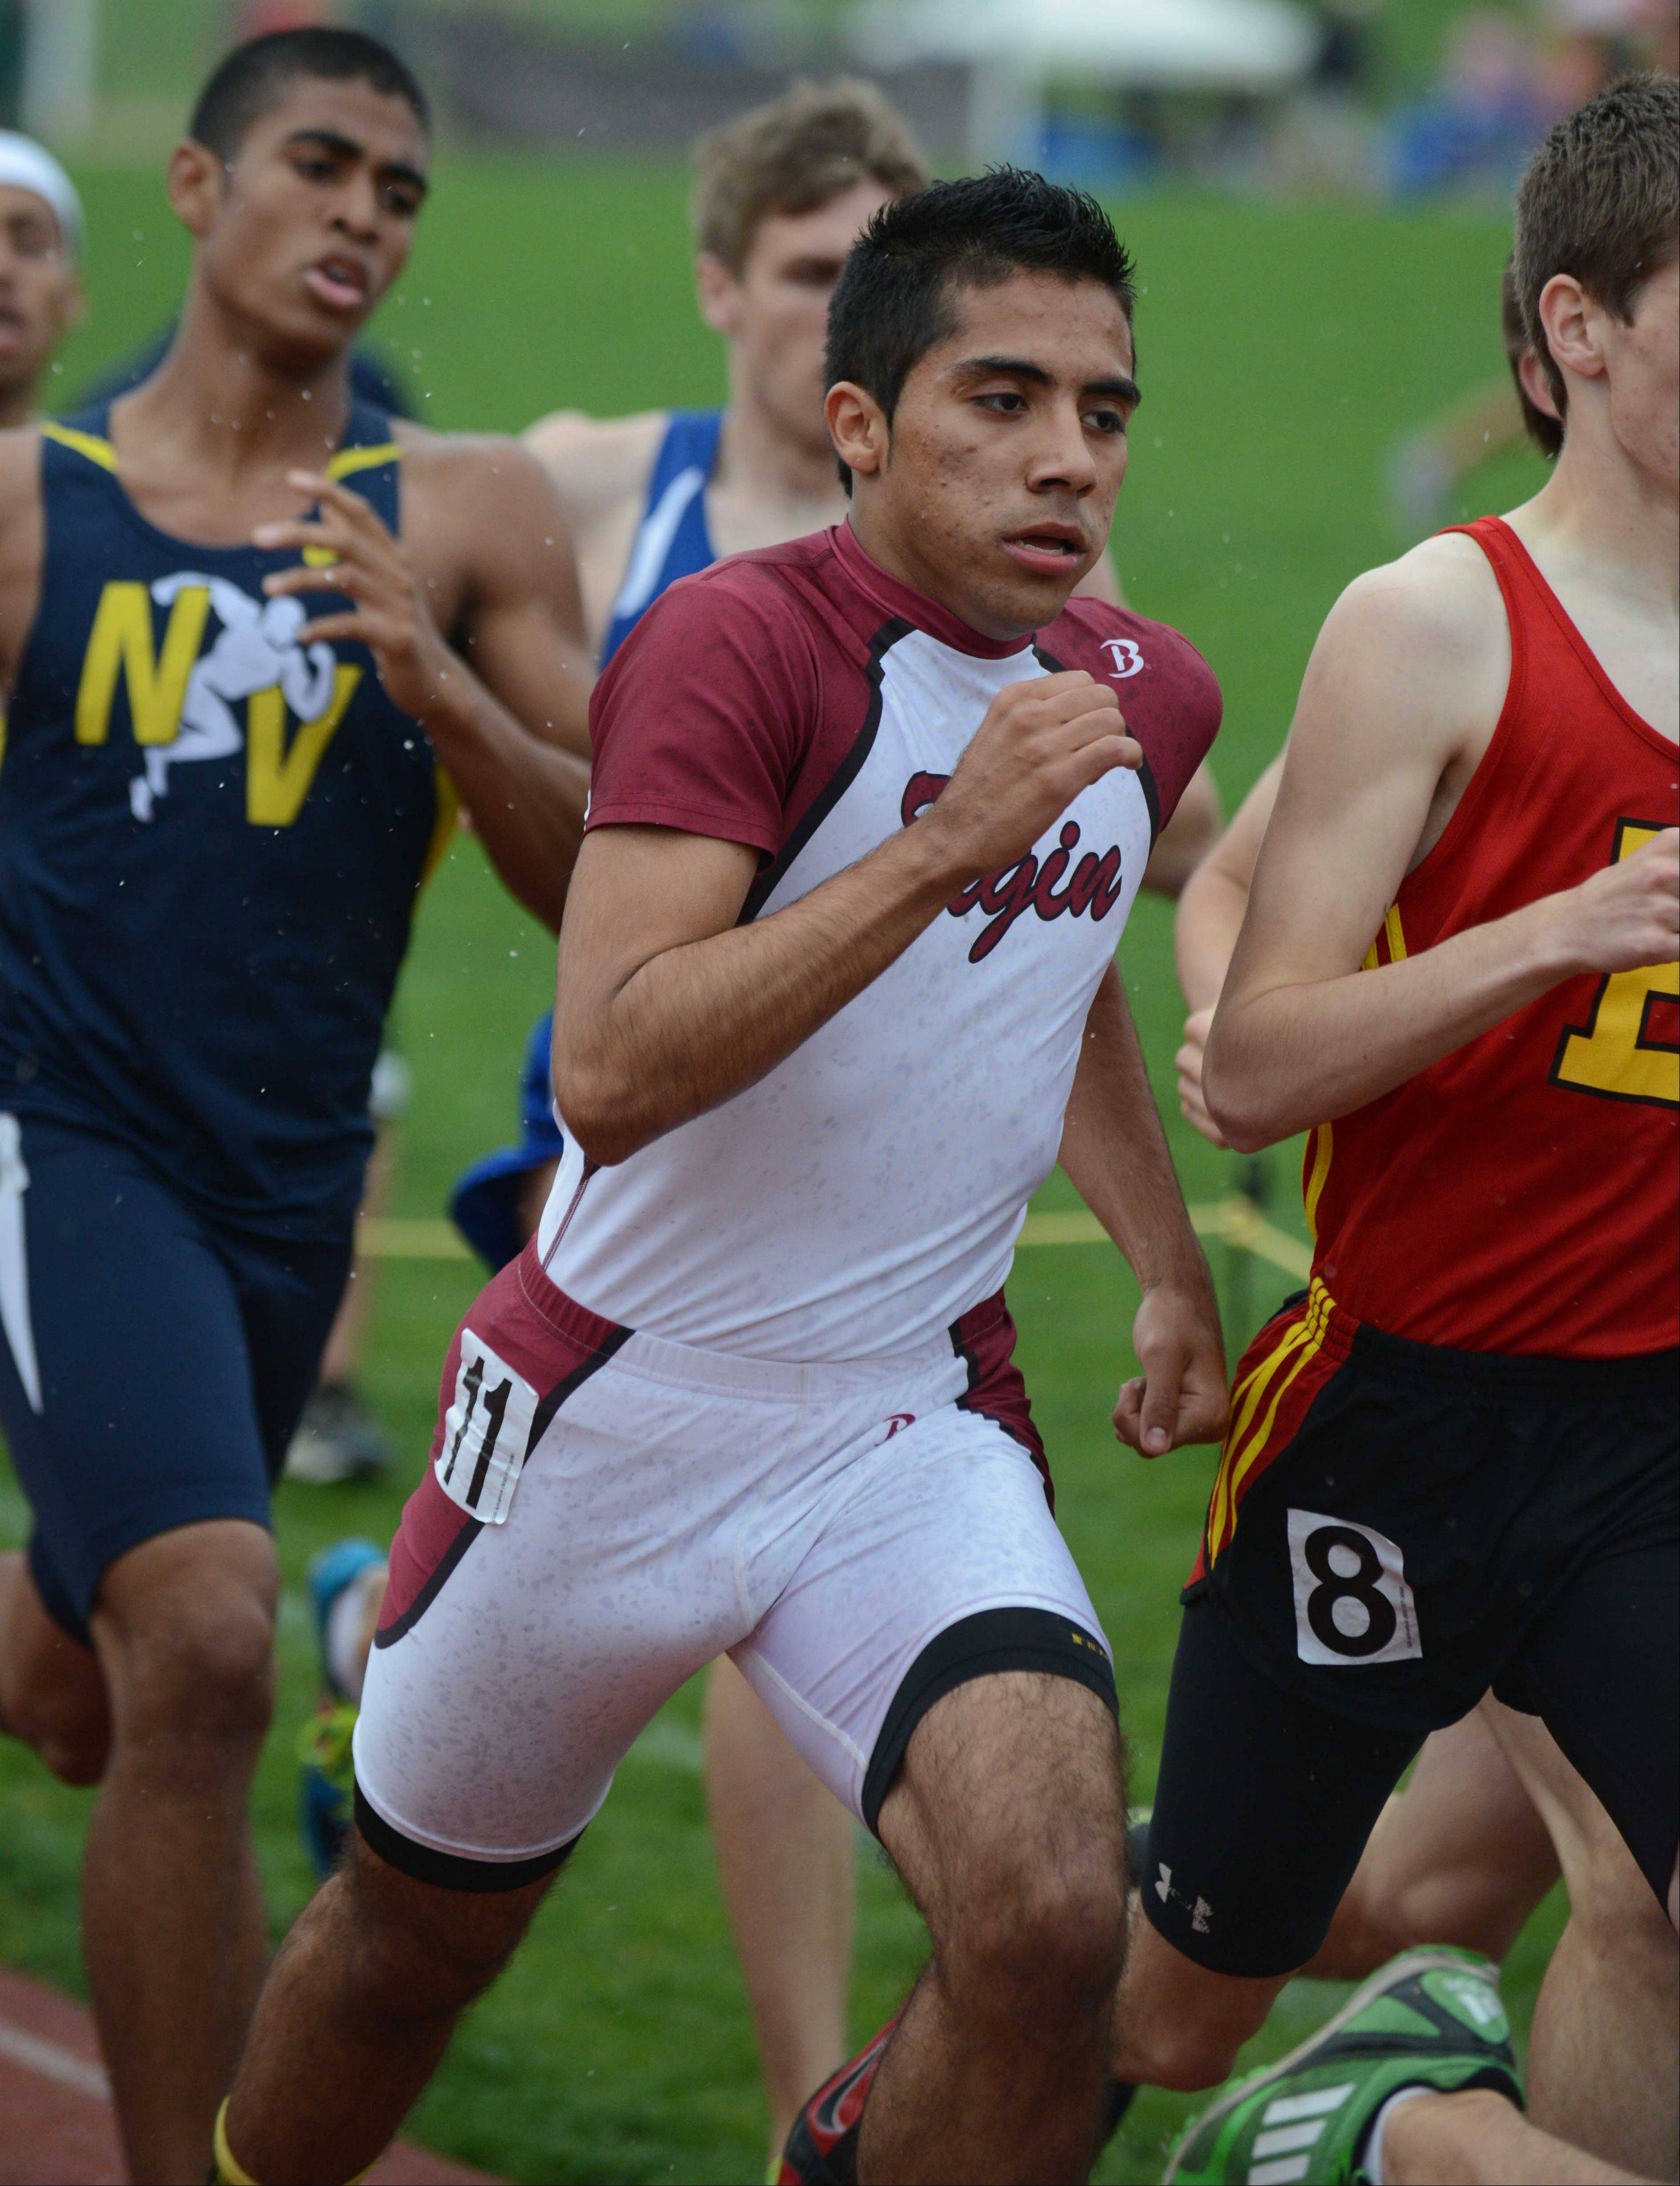 Chris Porras ran the 800 meter run during the Upstate Eight Conference boys track finals Thursday. The event was held at Lake Park East Campus.